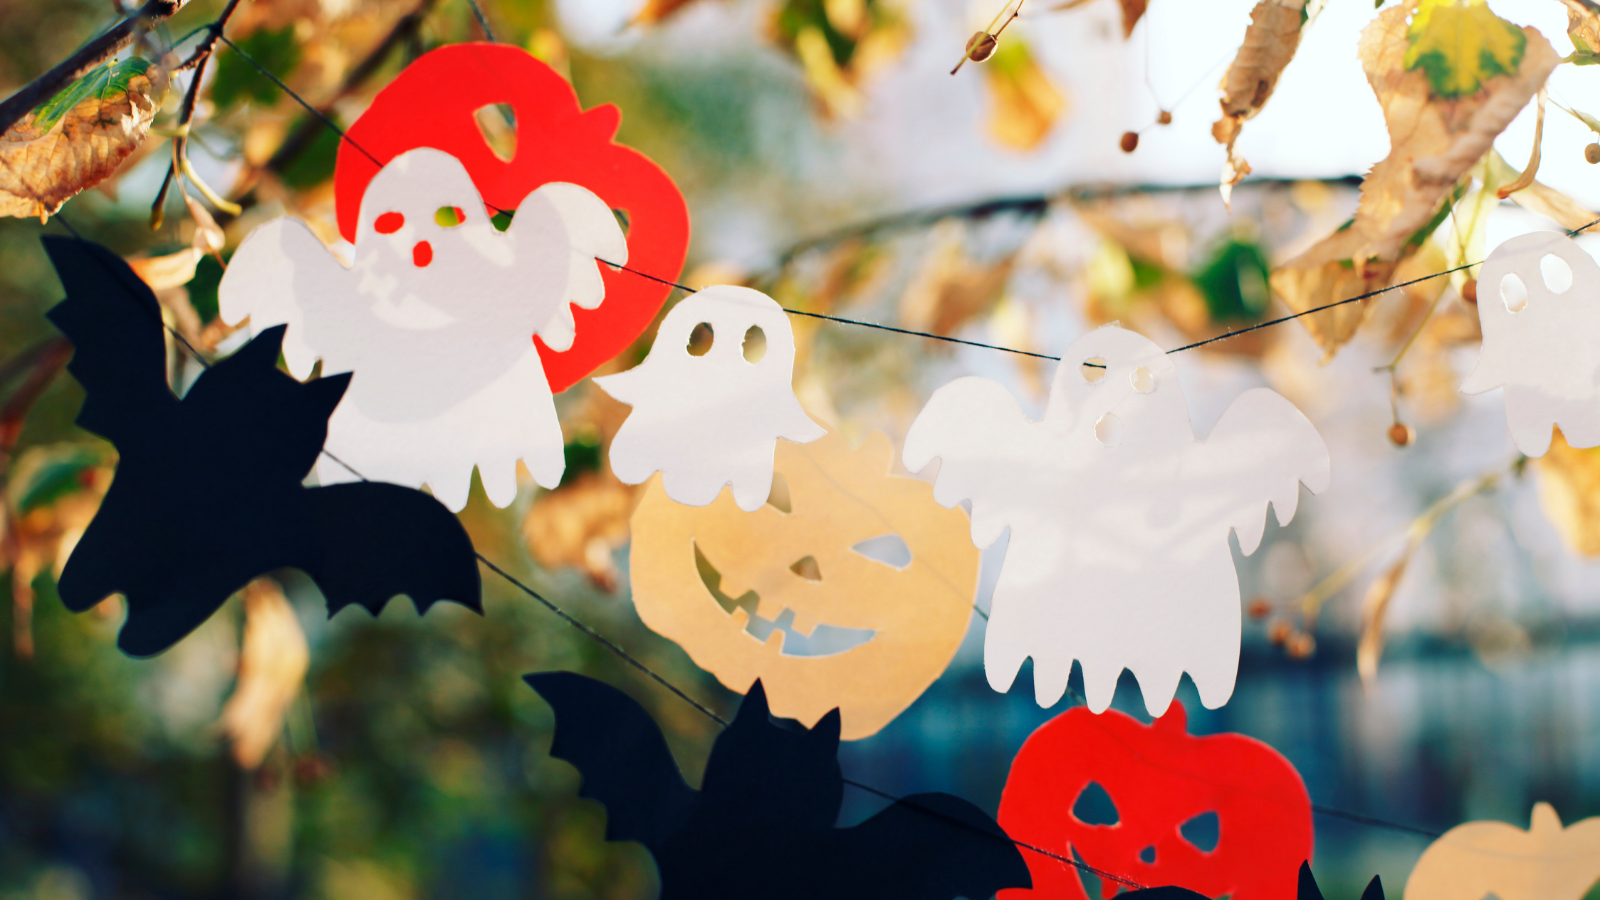 5 Fun, COVID-Friendly Ways to Celebrate Halloween with Families at Your Childcare Center